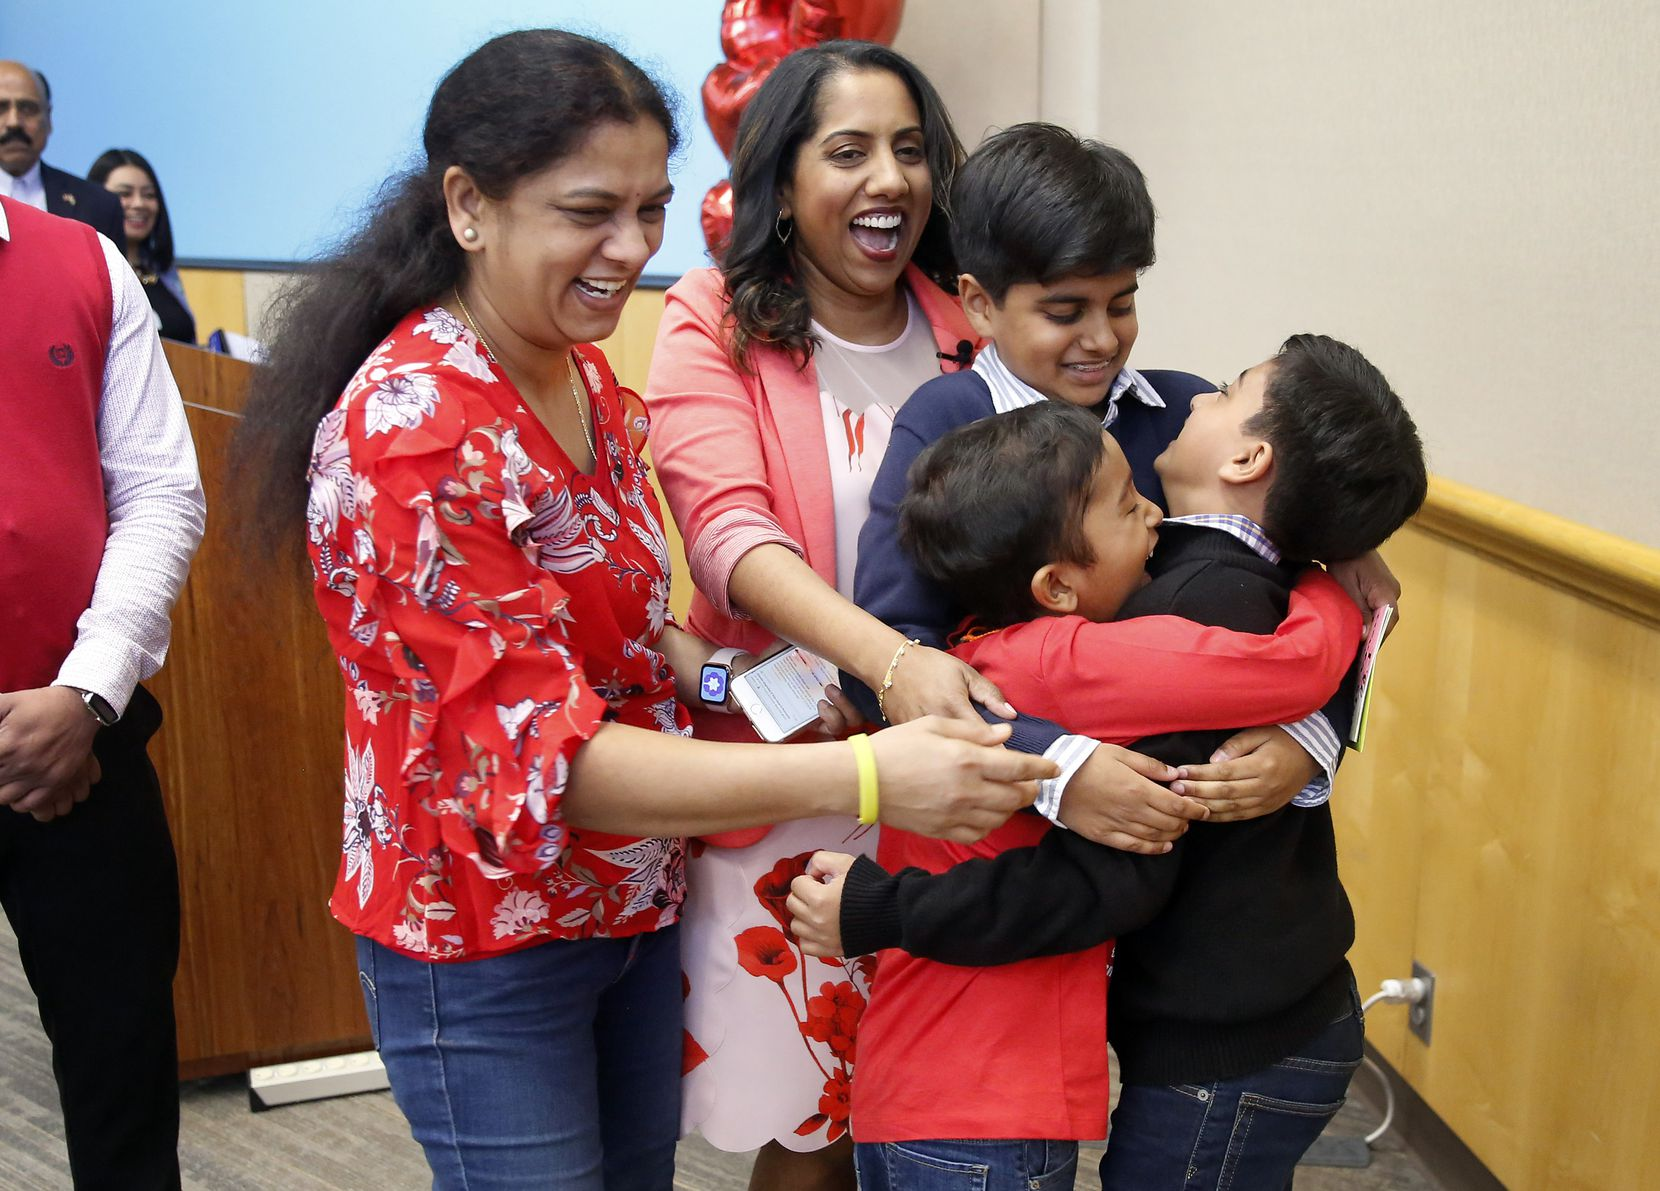 Bone marrow recipient Akshaj Nagilla (in red shirt, right) joins a group hug with his donor, Dr. Prasanthi Ganesa (back right), her kids Raghav, 12, and Revanth , 9 (right), and Akshaj's mother Anitha (left), Friday, February 14, 2020. Akshaj and his donor met for the first time after receiving her donation at Children's Medical Center Dallas.  (Tom Fox/The Dallas Morning News)